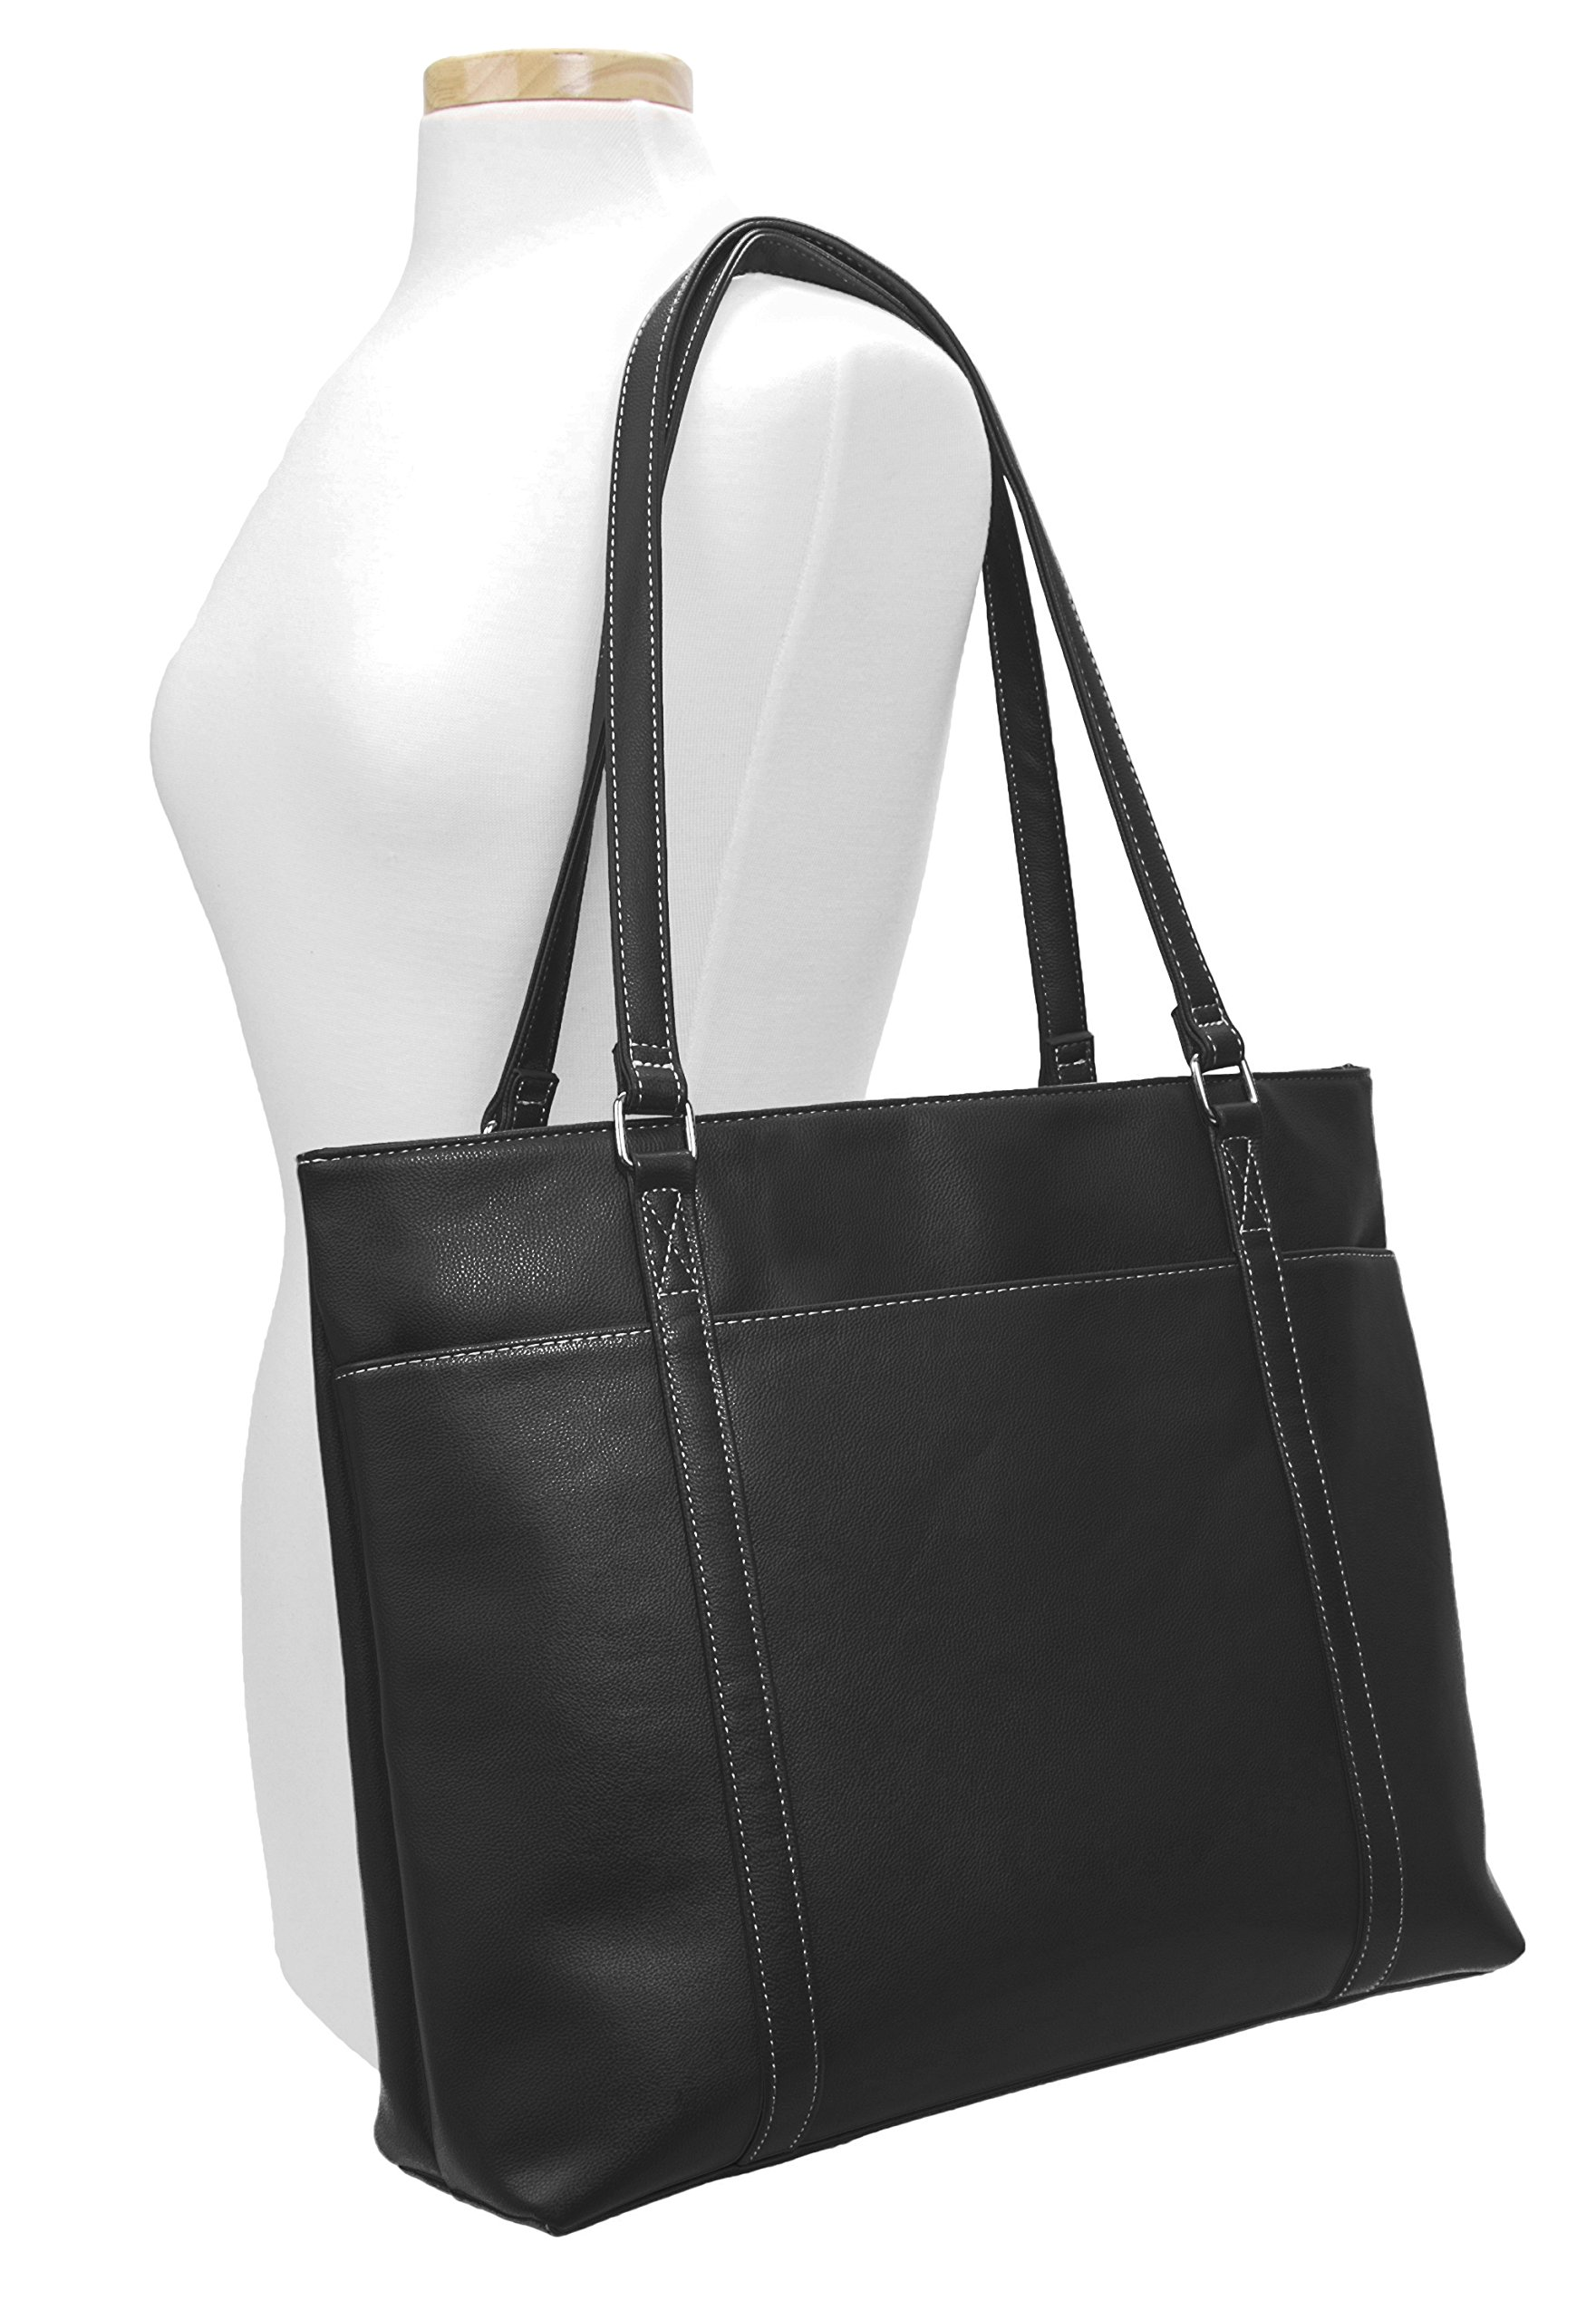 Overbrooke Classic Womens Tote Bag for Laptops  up to 15.6 Inches, Black by Overbrooke (Image #6)